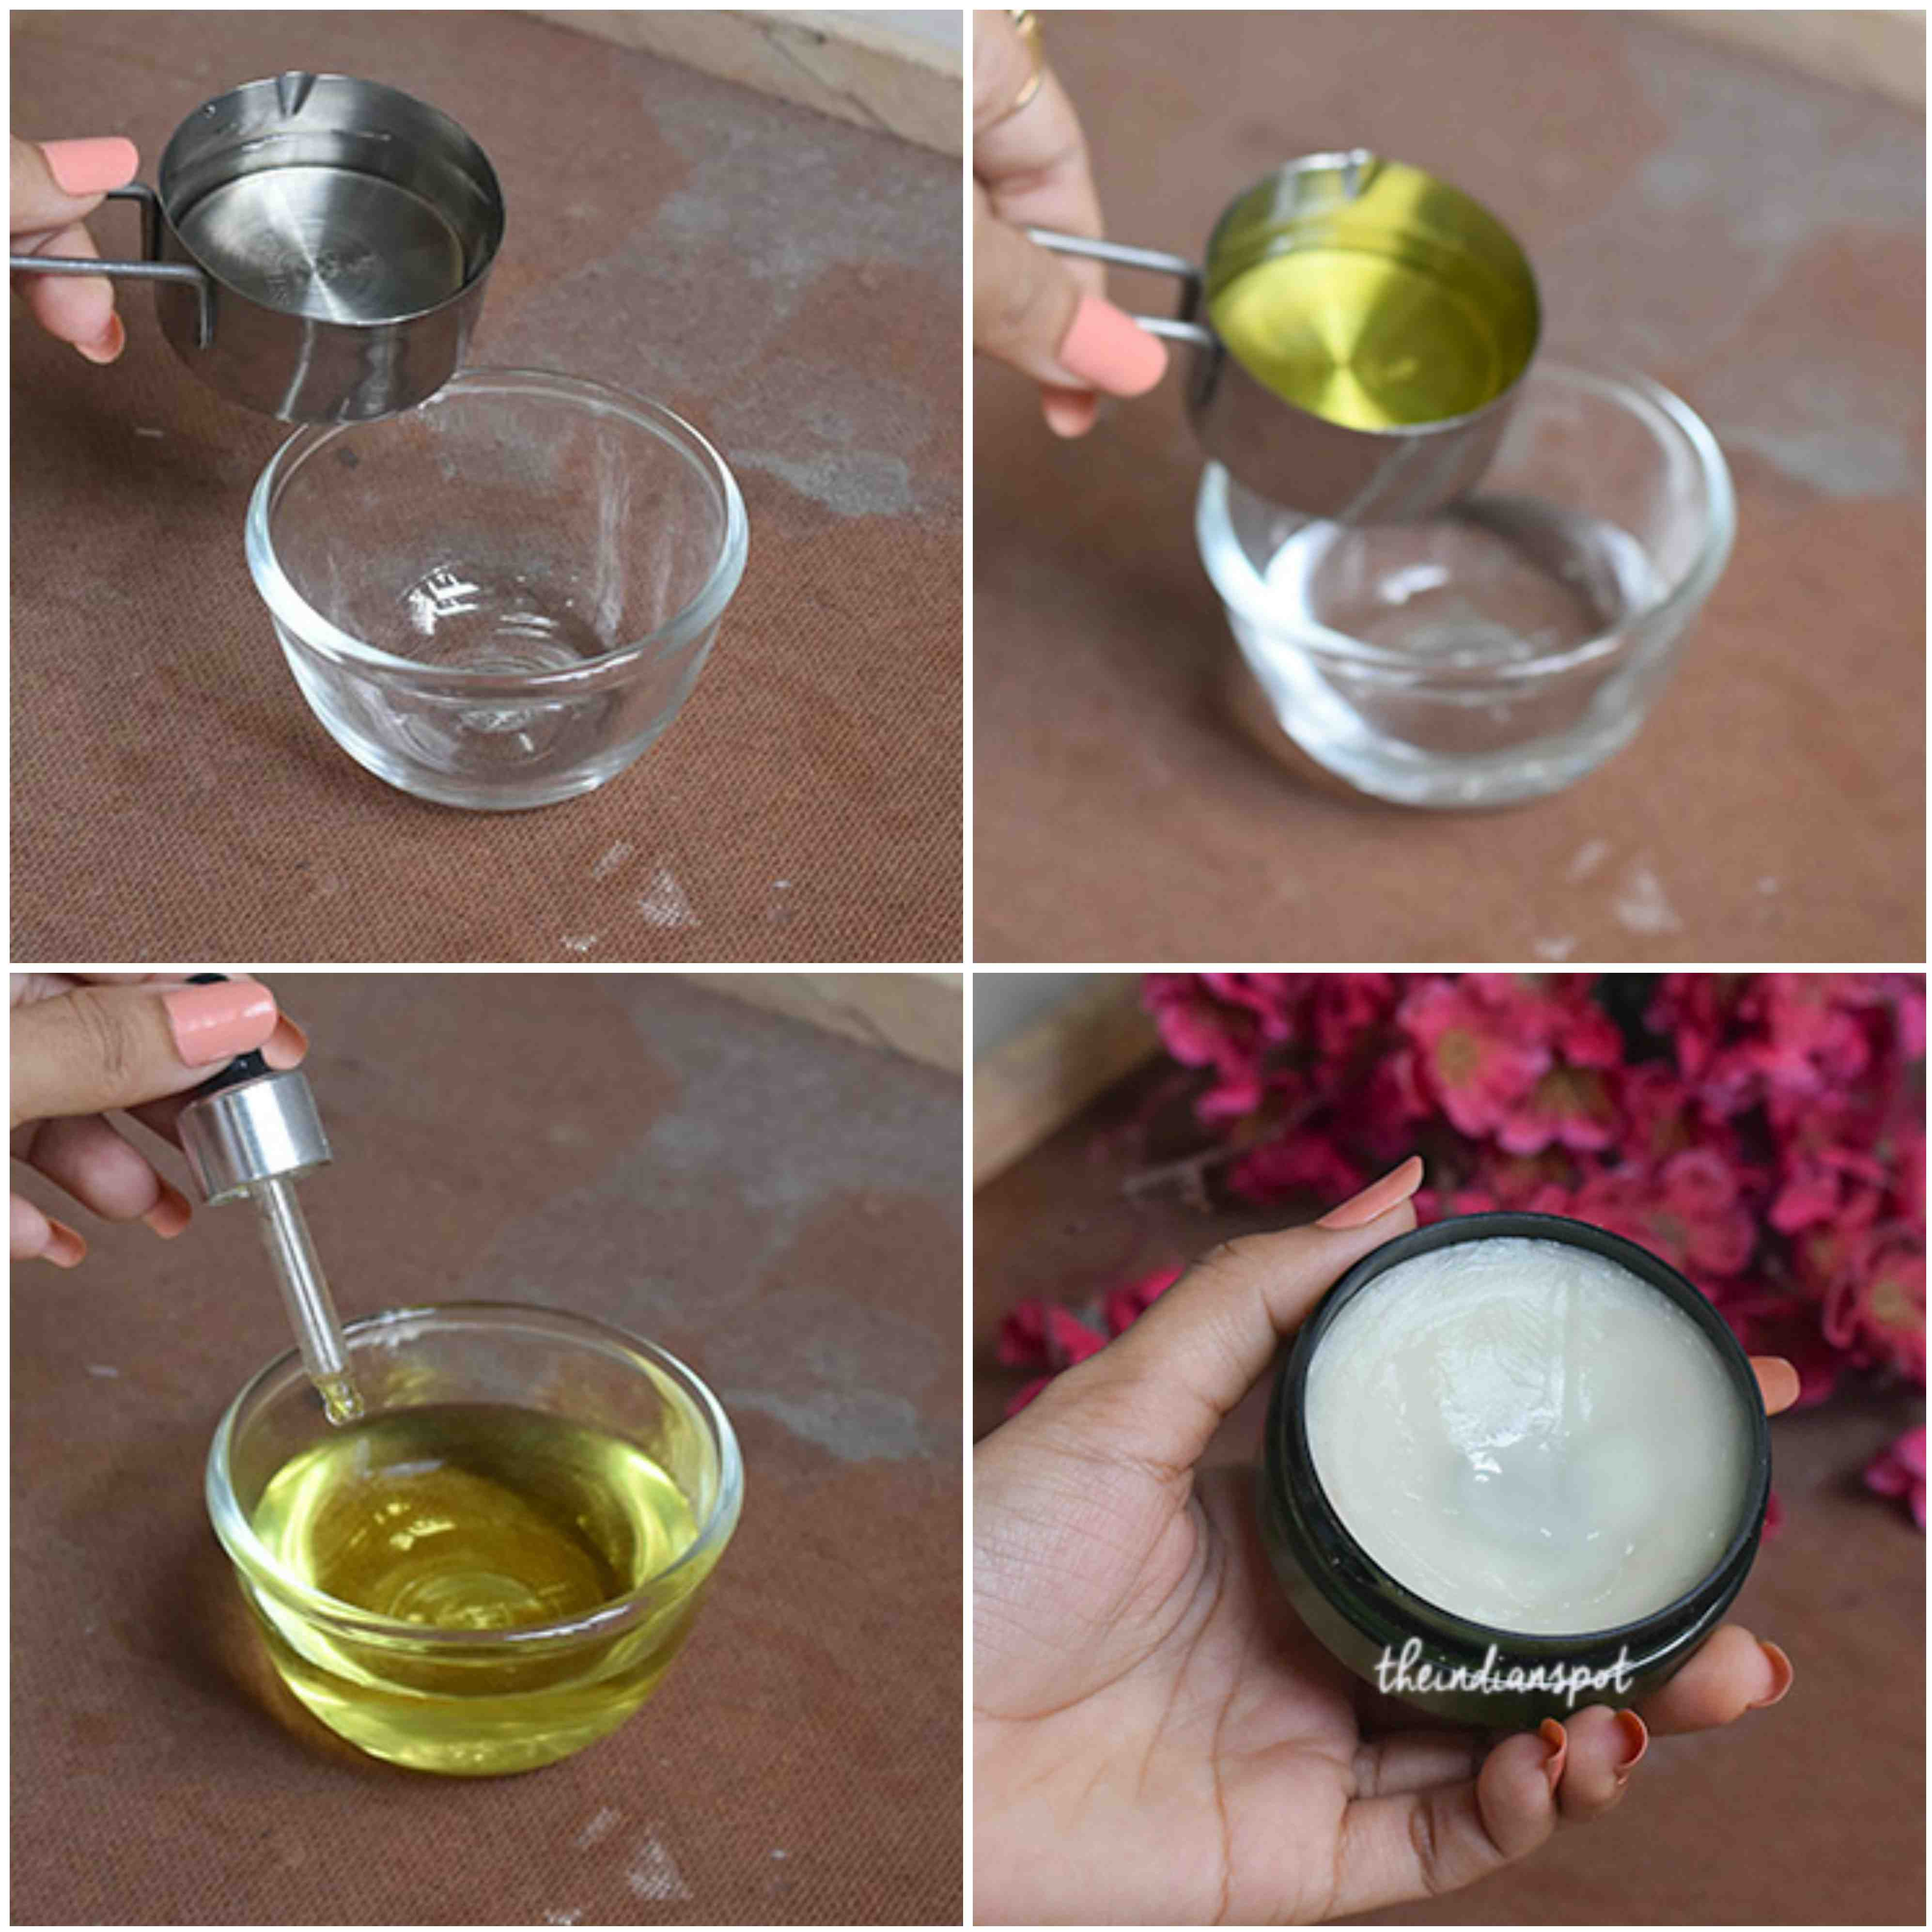 OIL CLEANSING BALM FOR GLOWING SKIN